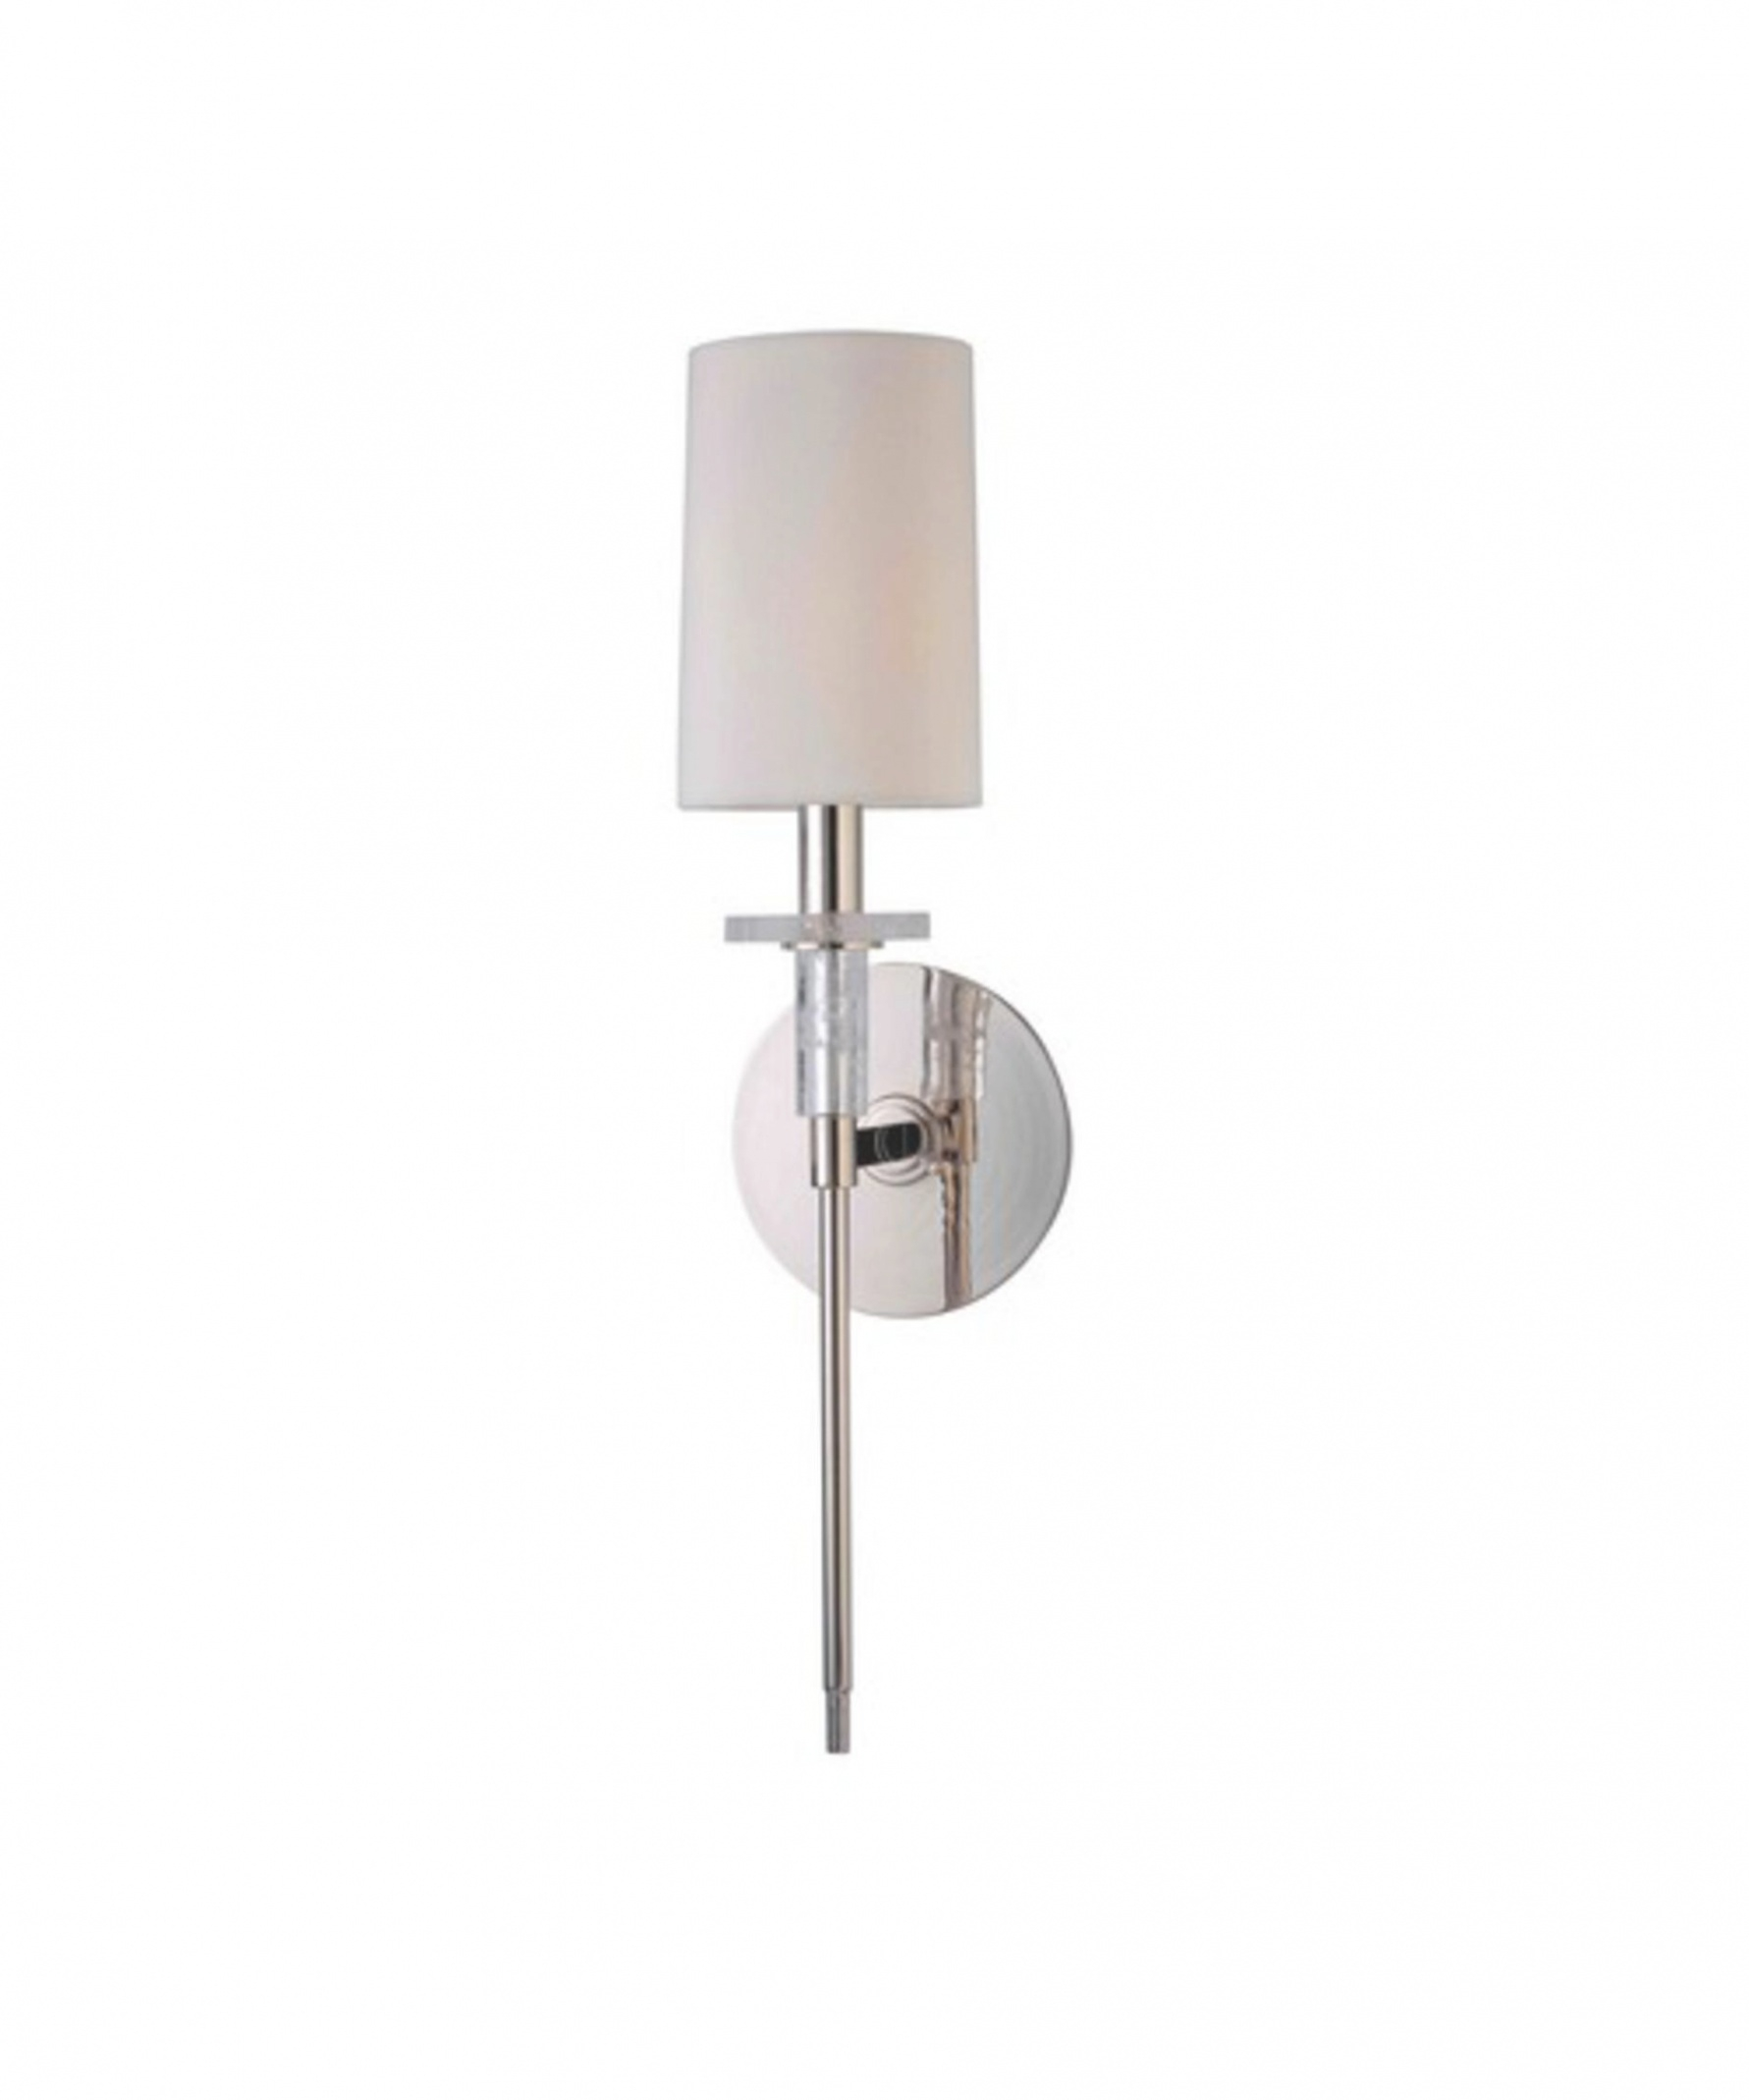 White wall sconce light 10 reasons to install warisan lighting stubble radiance white wall sconce amipublicfo Gallery